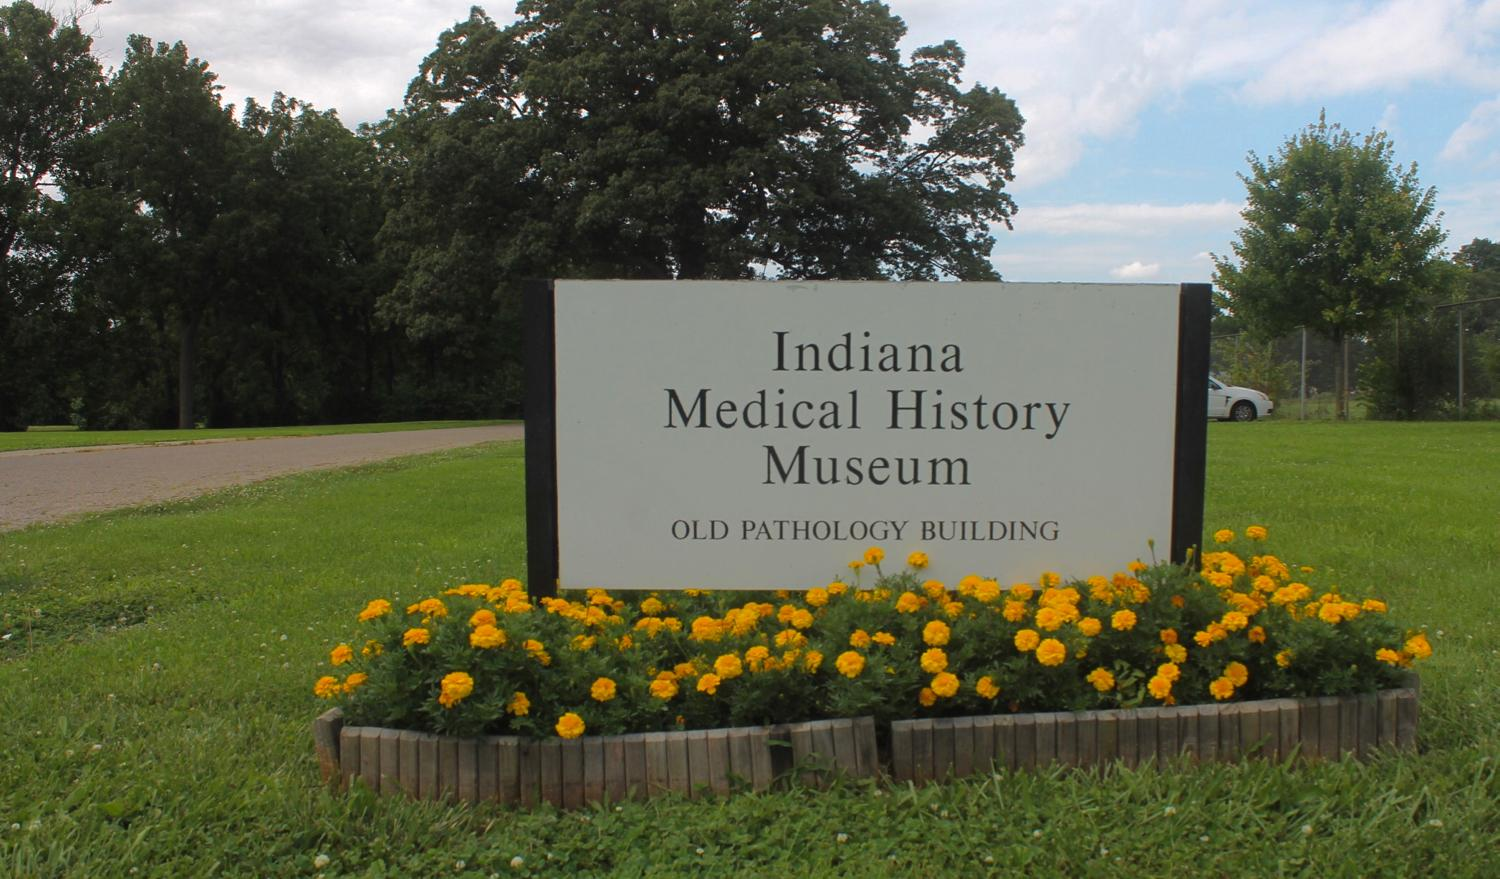 Located on the grounds of what used to be the Indianapolis Central State Hospital (originally known as the Indiana Hospital for the Insane), the Indiana Medical History Museum has been operating as a museum since 1969 in the former Pathology Building of the hospital. It's the oldest surviving pathology facility in the nation. The museum offers guided tours, holds special events, and organizes programs covering an array of topics related to science, medicine and mental health care. It's about a two-hour drive from Downtown Cincinnati. ADDRESS: 3045 Vermont Street, Indianapolis, IN 46222 / Image: Rose Brewington // Published: 7.26.17